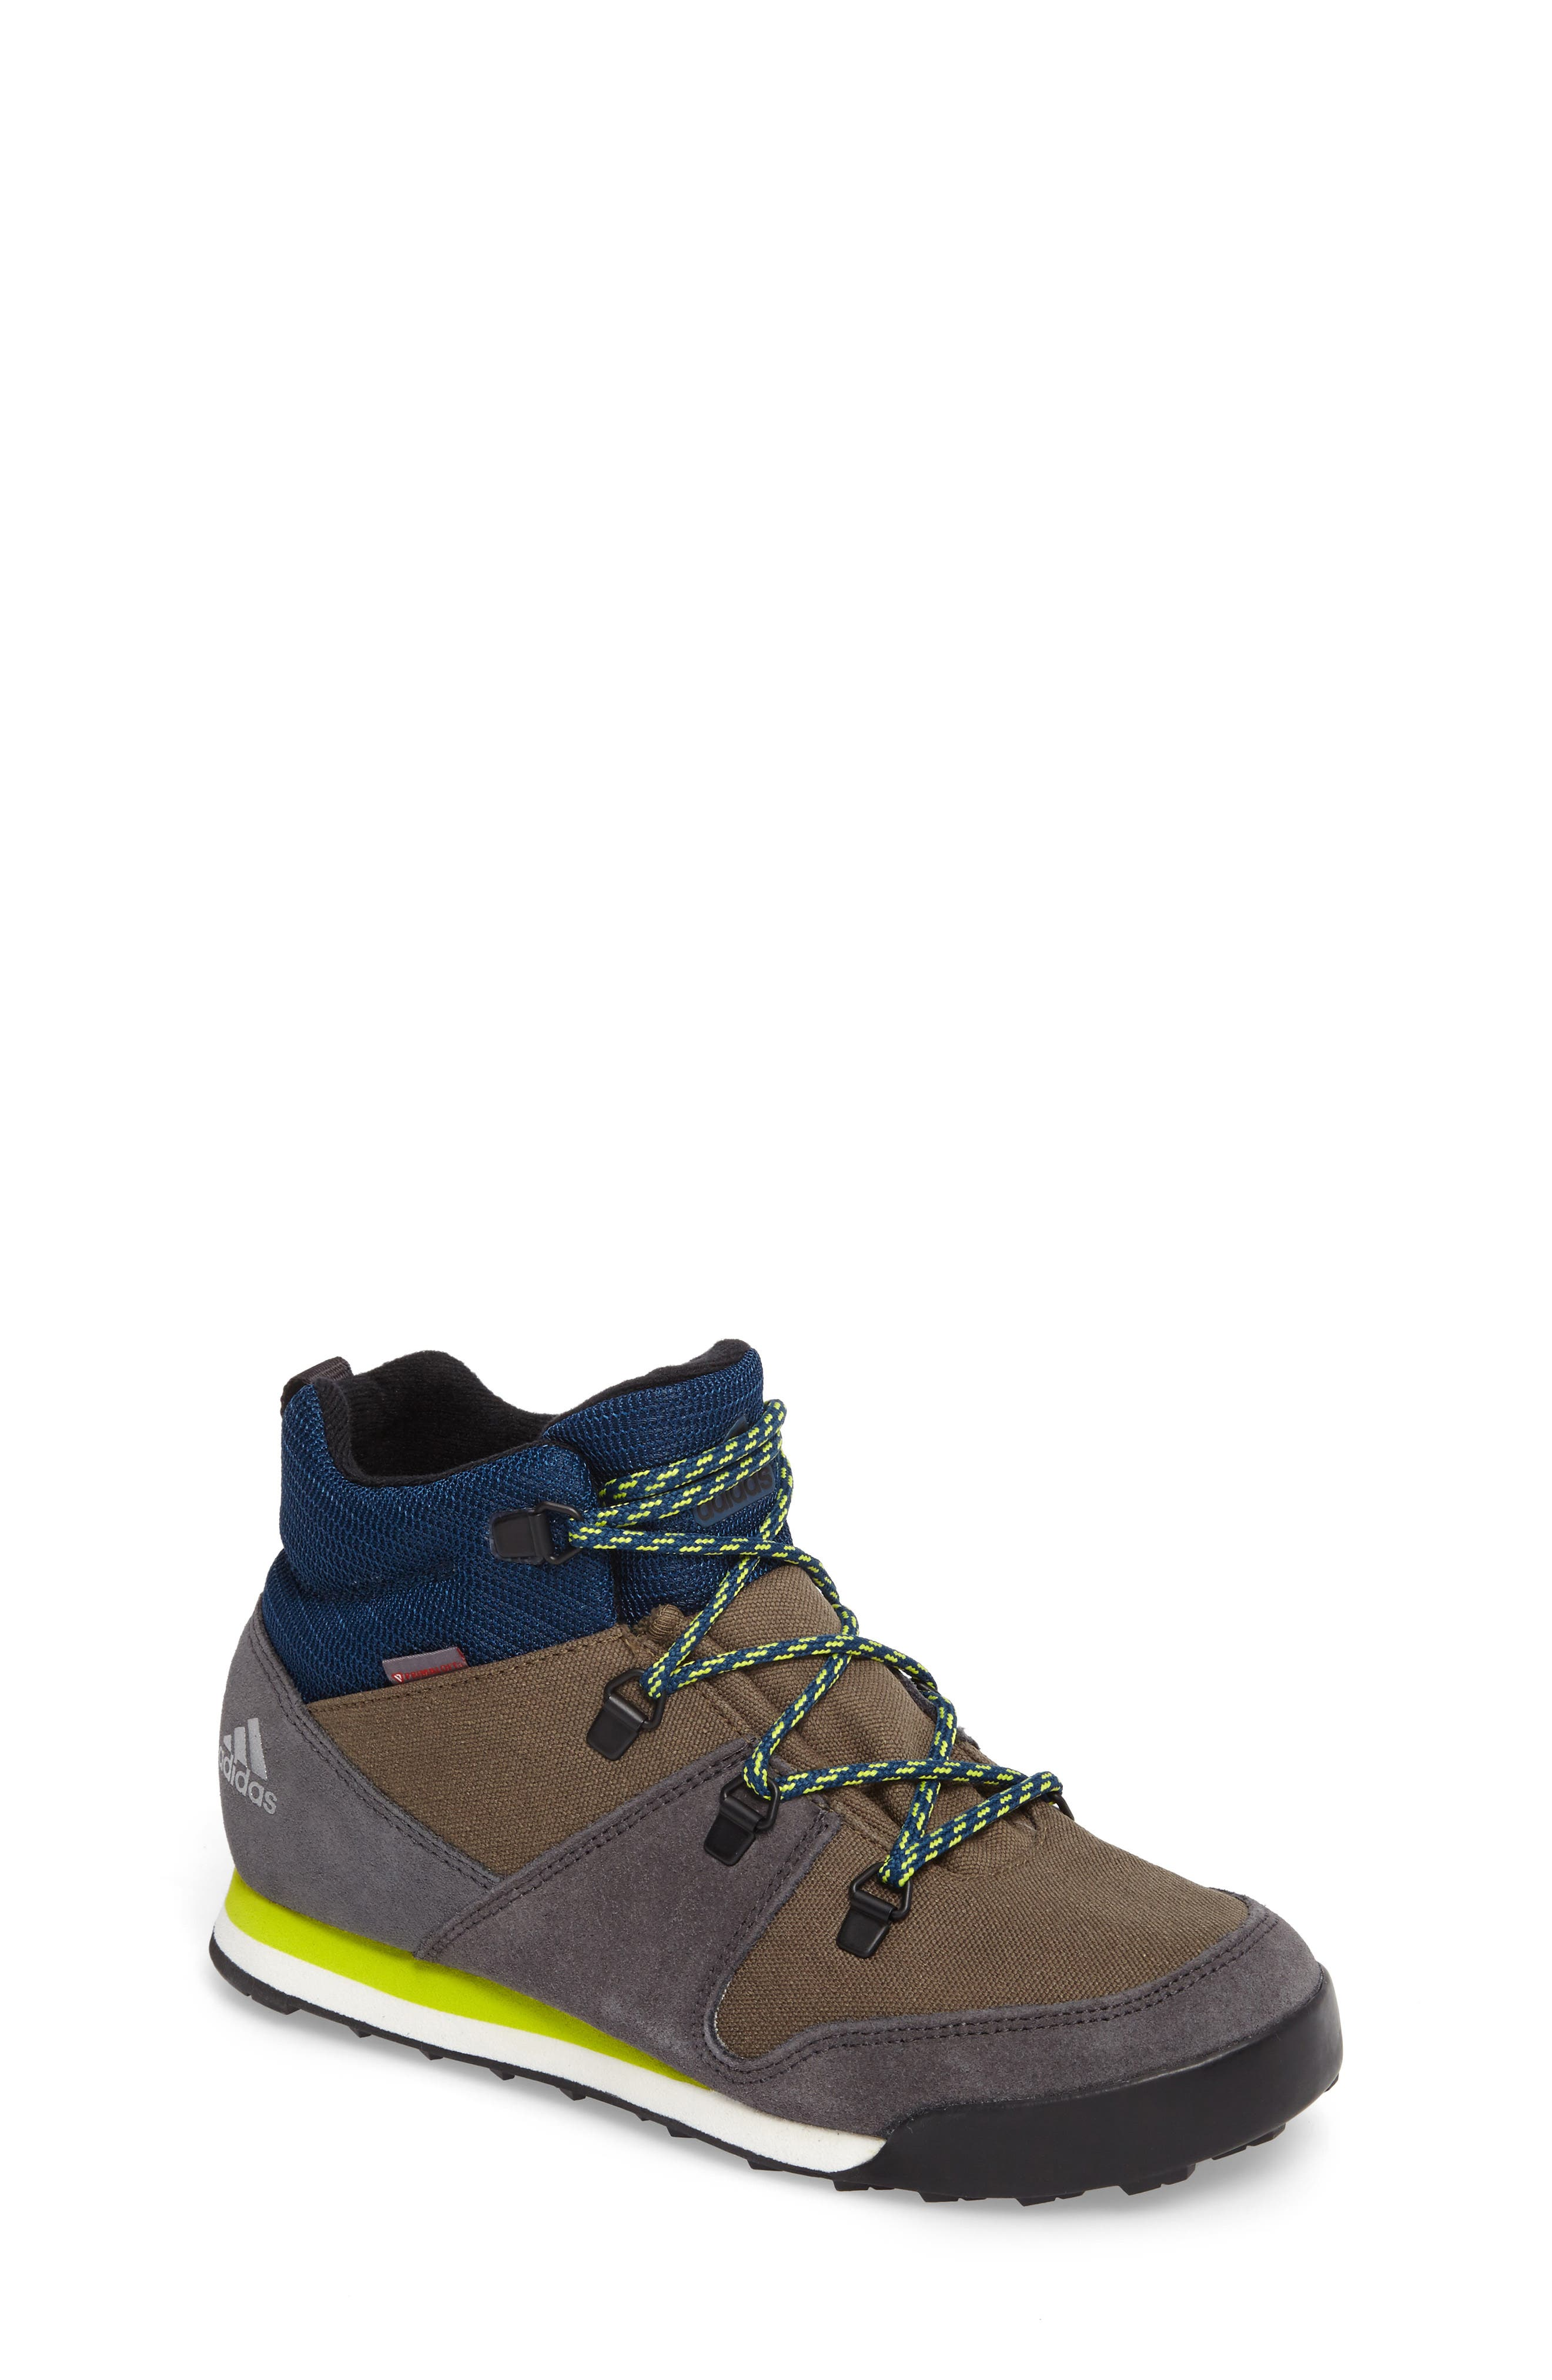 Alternate Image 1 Selected - adidas Snowpitch Insulated Sneaker Boot (Toddler, Little Kid & Big Kid)